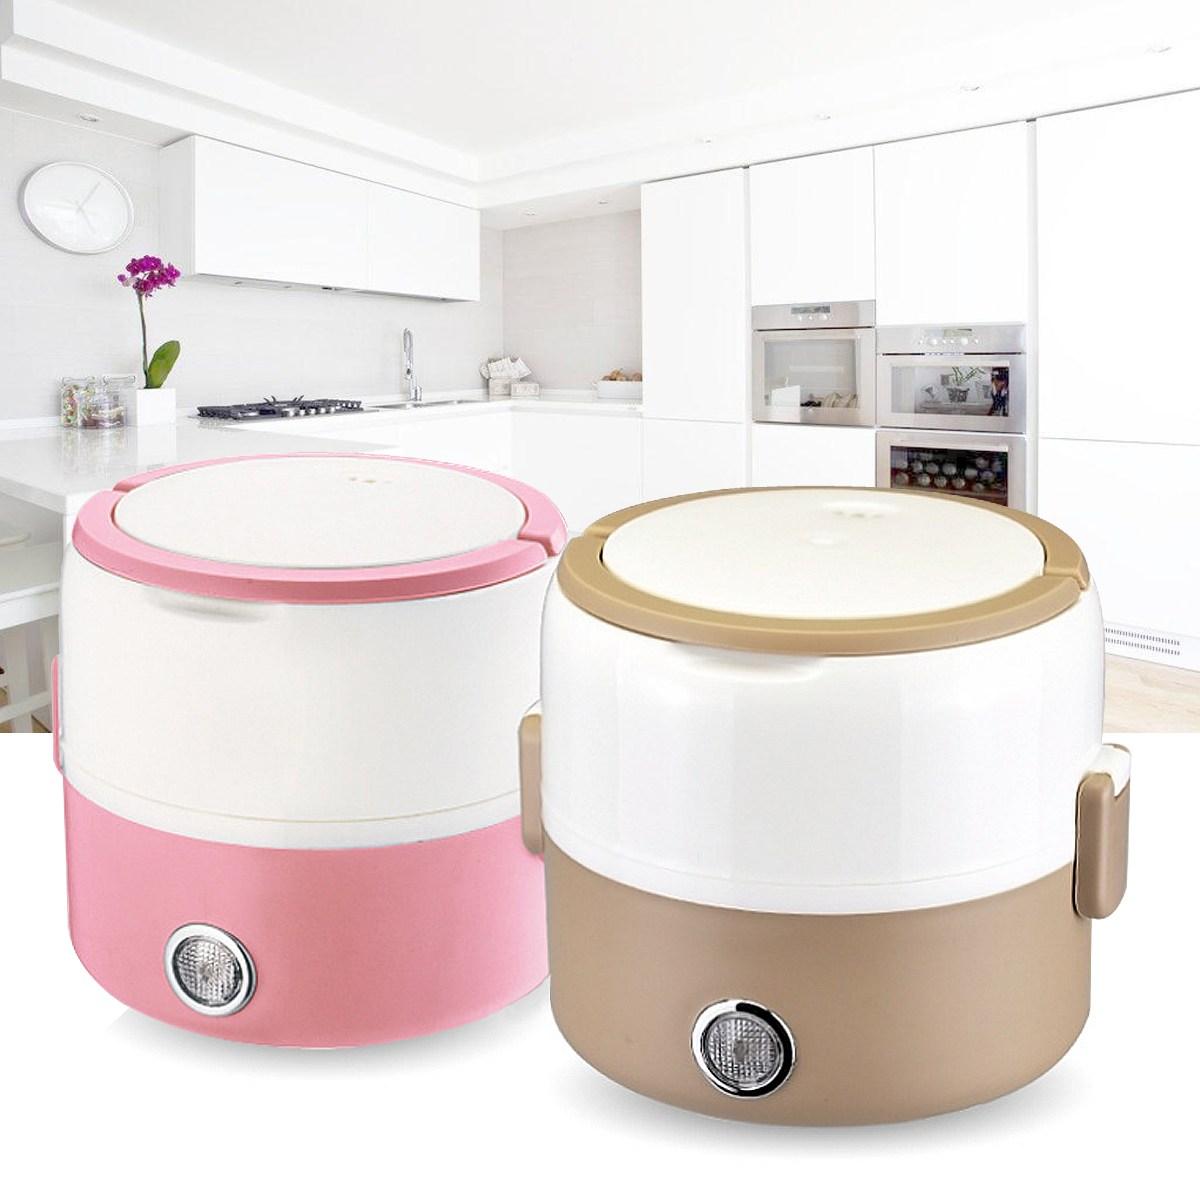 1Pcs Electric Heating Container Mini Rice Cooker Portable Compact Food Warmer Lunch Reheating food Box rice cooker parts paul heating plate 900w thick aluminum heating plate